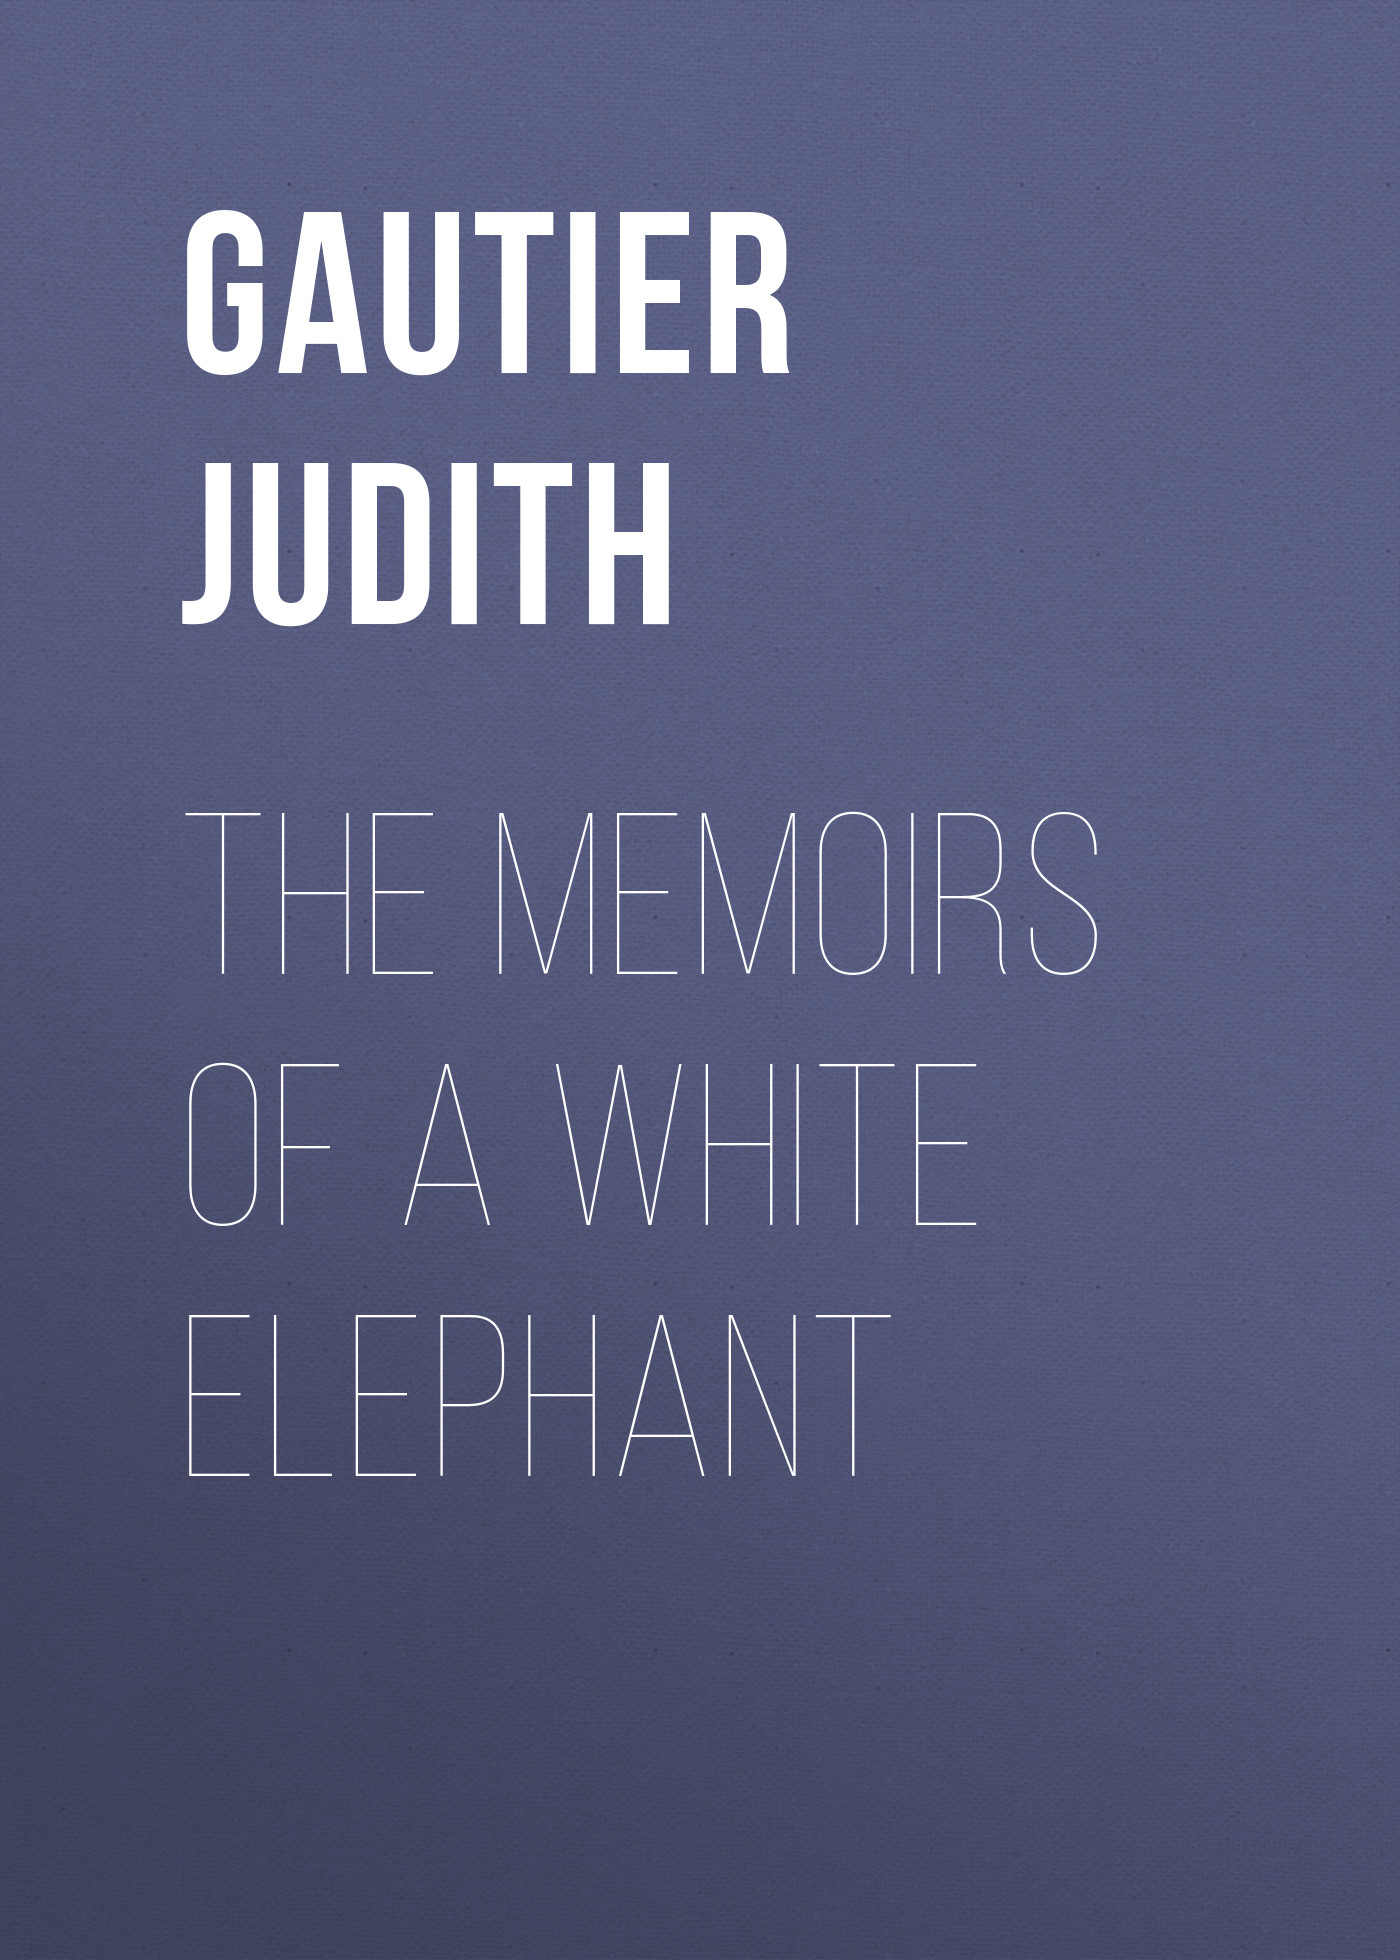 Gautier Judith The Memoirs of a White Elephant gautier judith le collier des jours